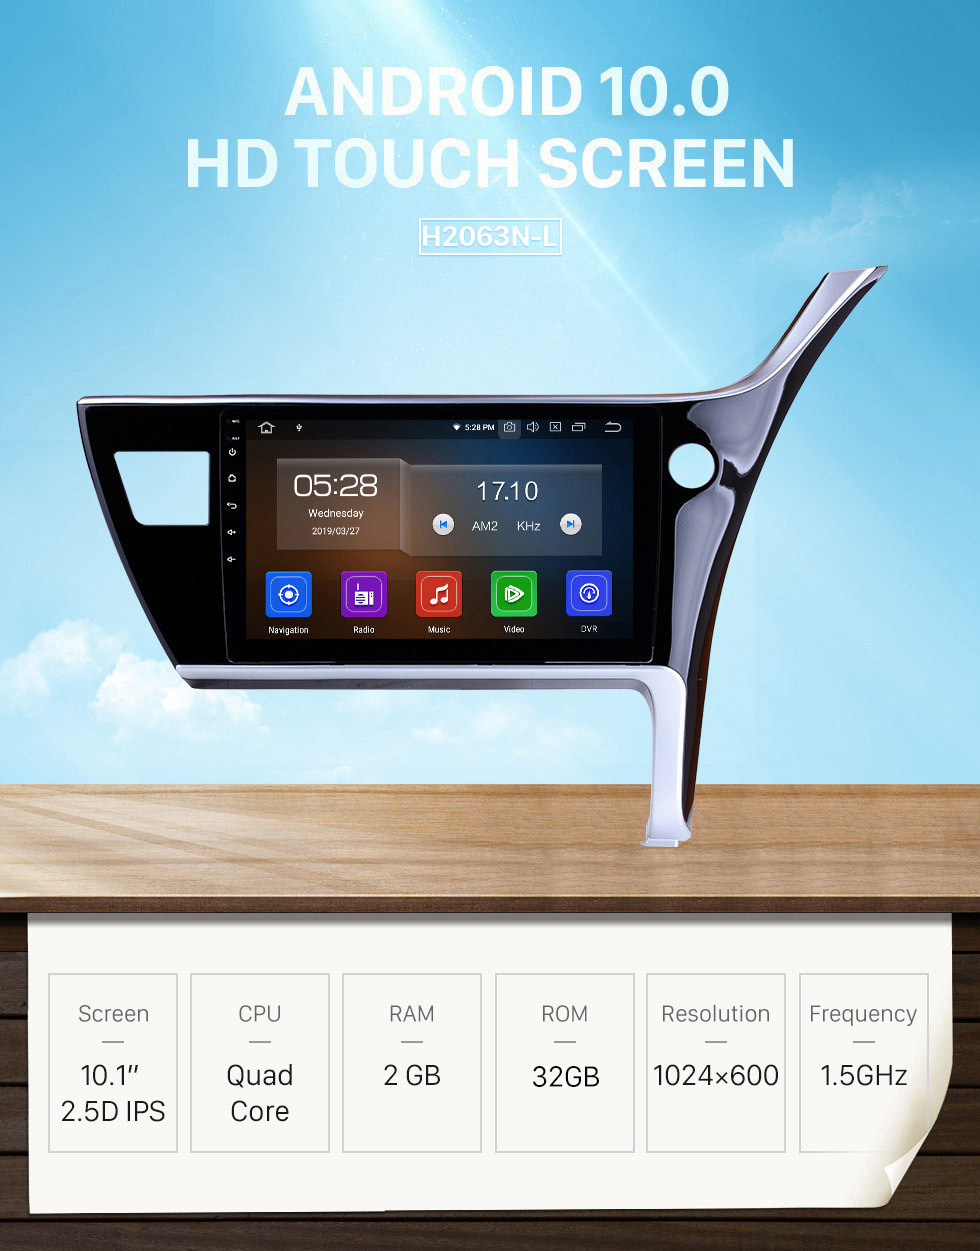 Seicane 10.1 inch Android 10.0 2017 Toyota Corolla Right Hand driving Car Head unit HD Touchscreen Radio GPS Navigation System Support 3G/4G Wifi Steering Wheel Control Vedio Carplay Bluetooth DVR